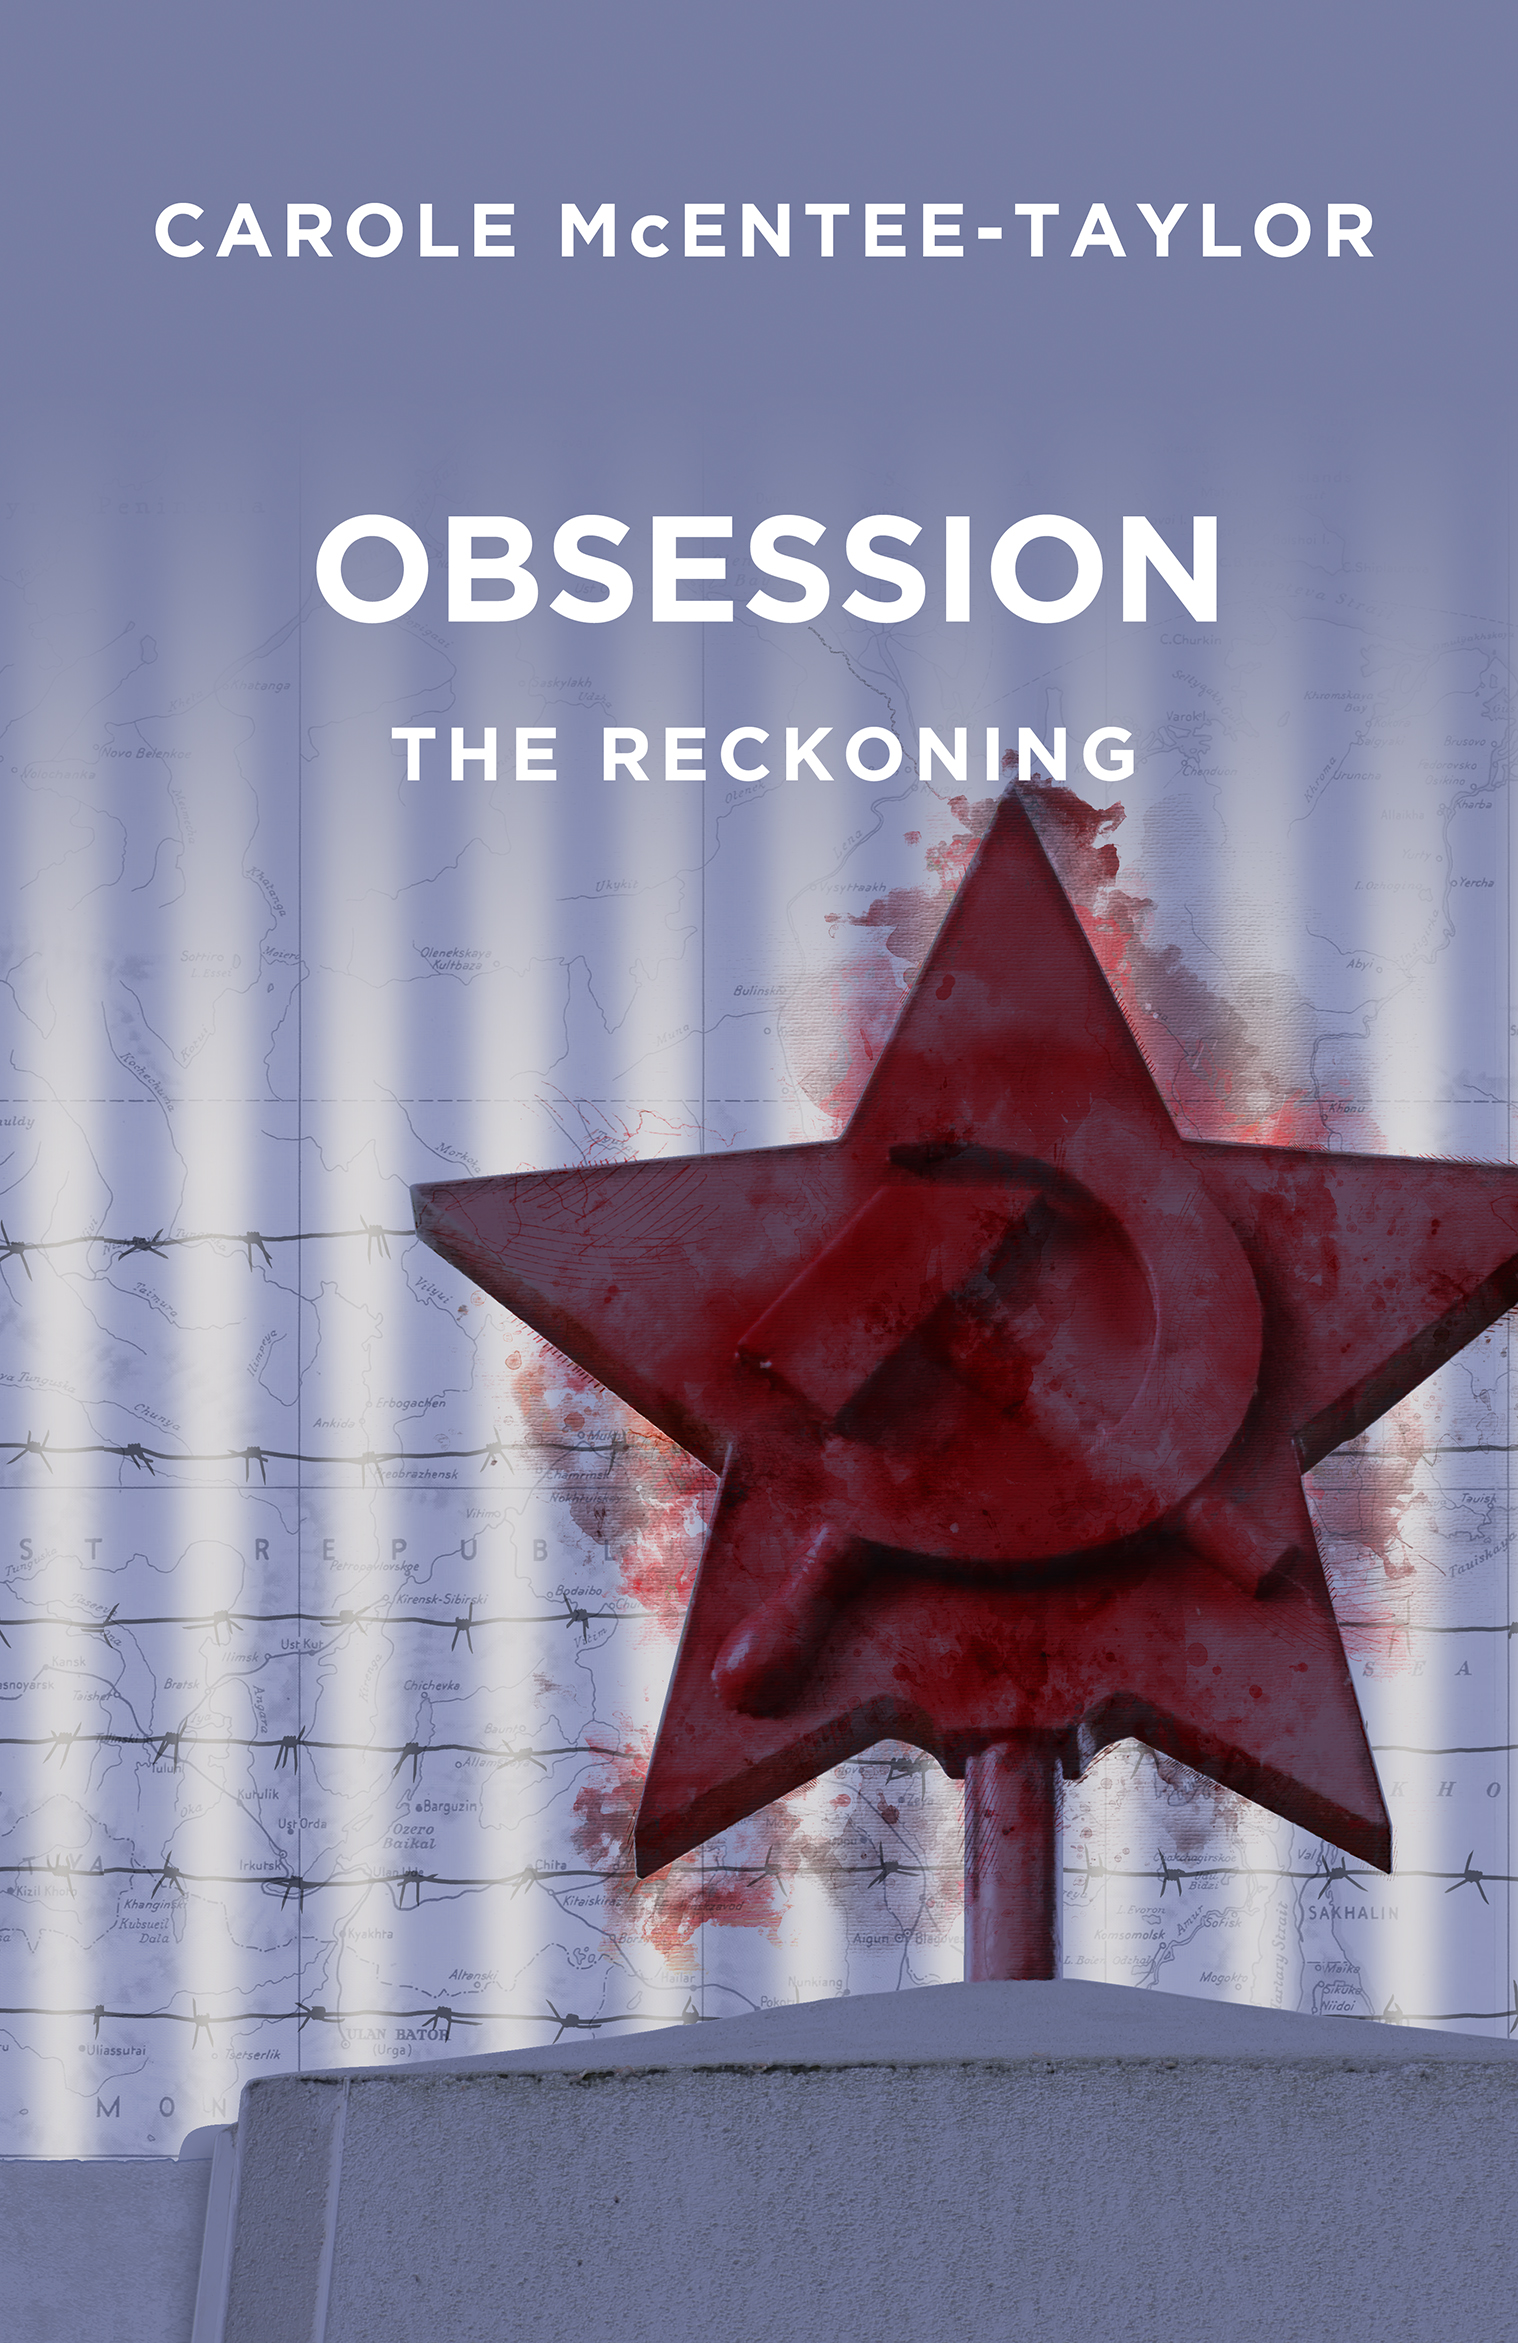 Obsession: The Reckoning